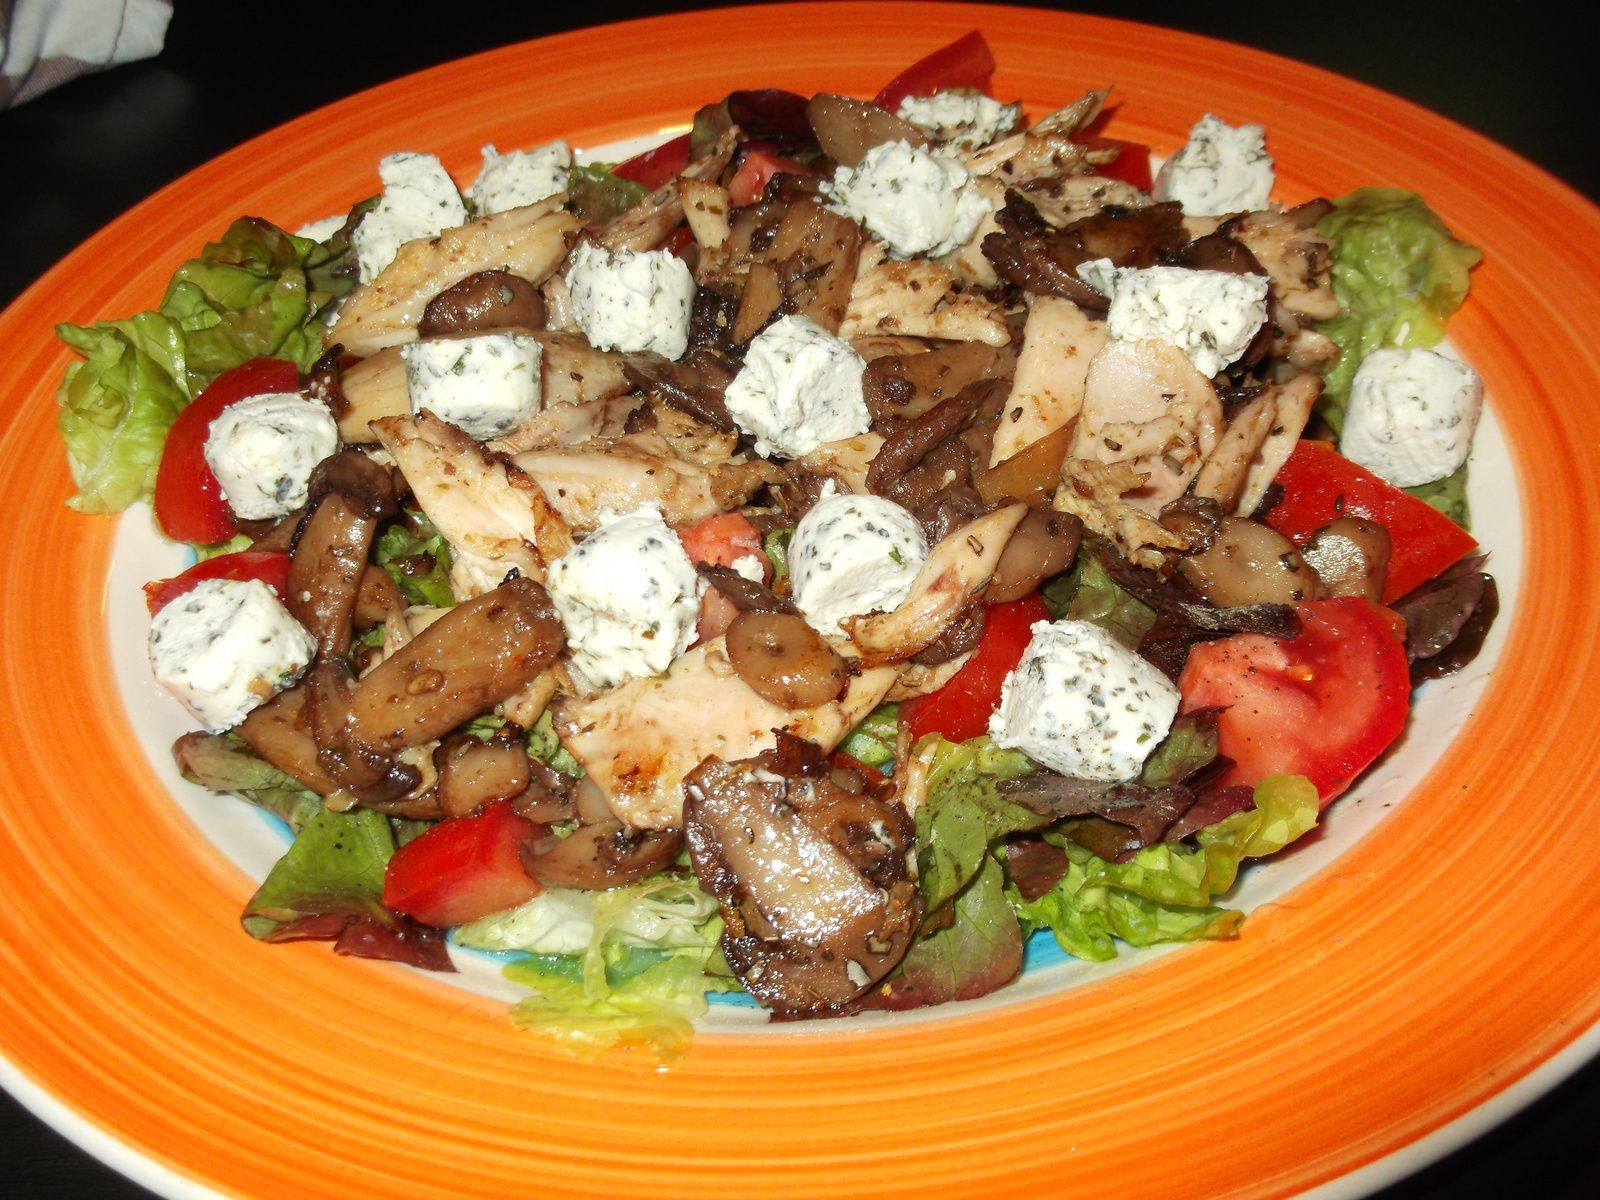 salade, poulet, champignons, tomates et fromage